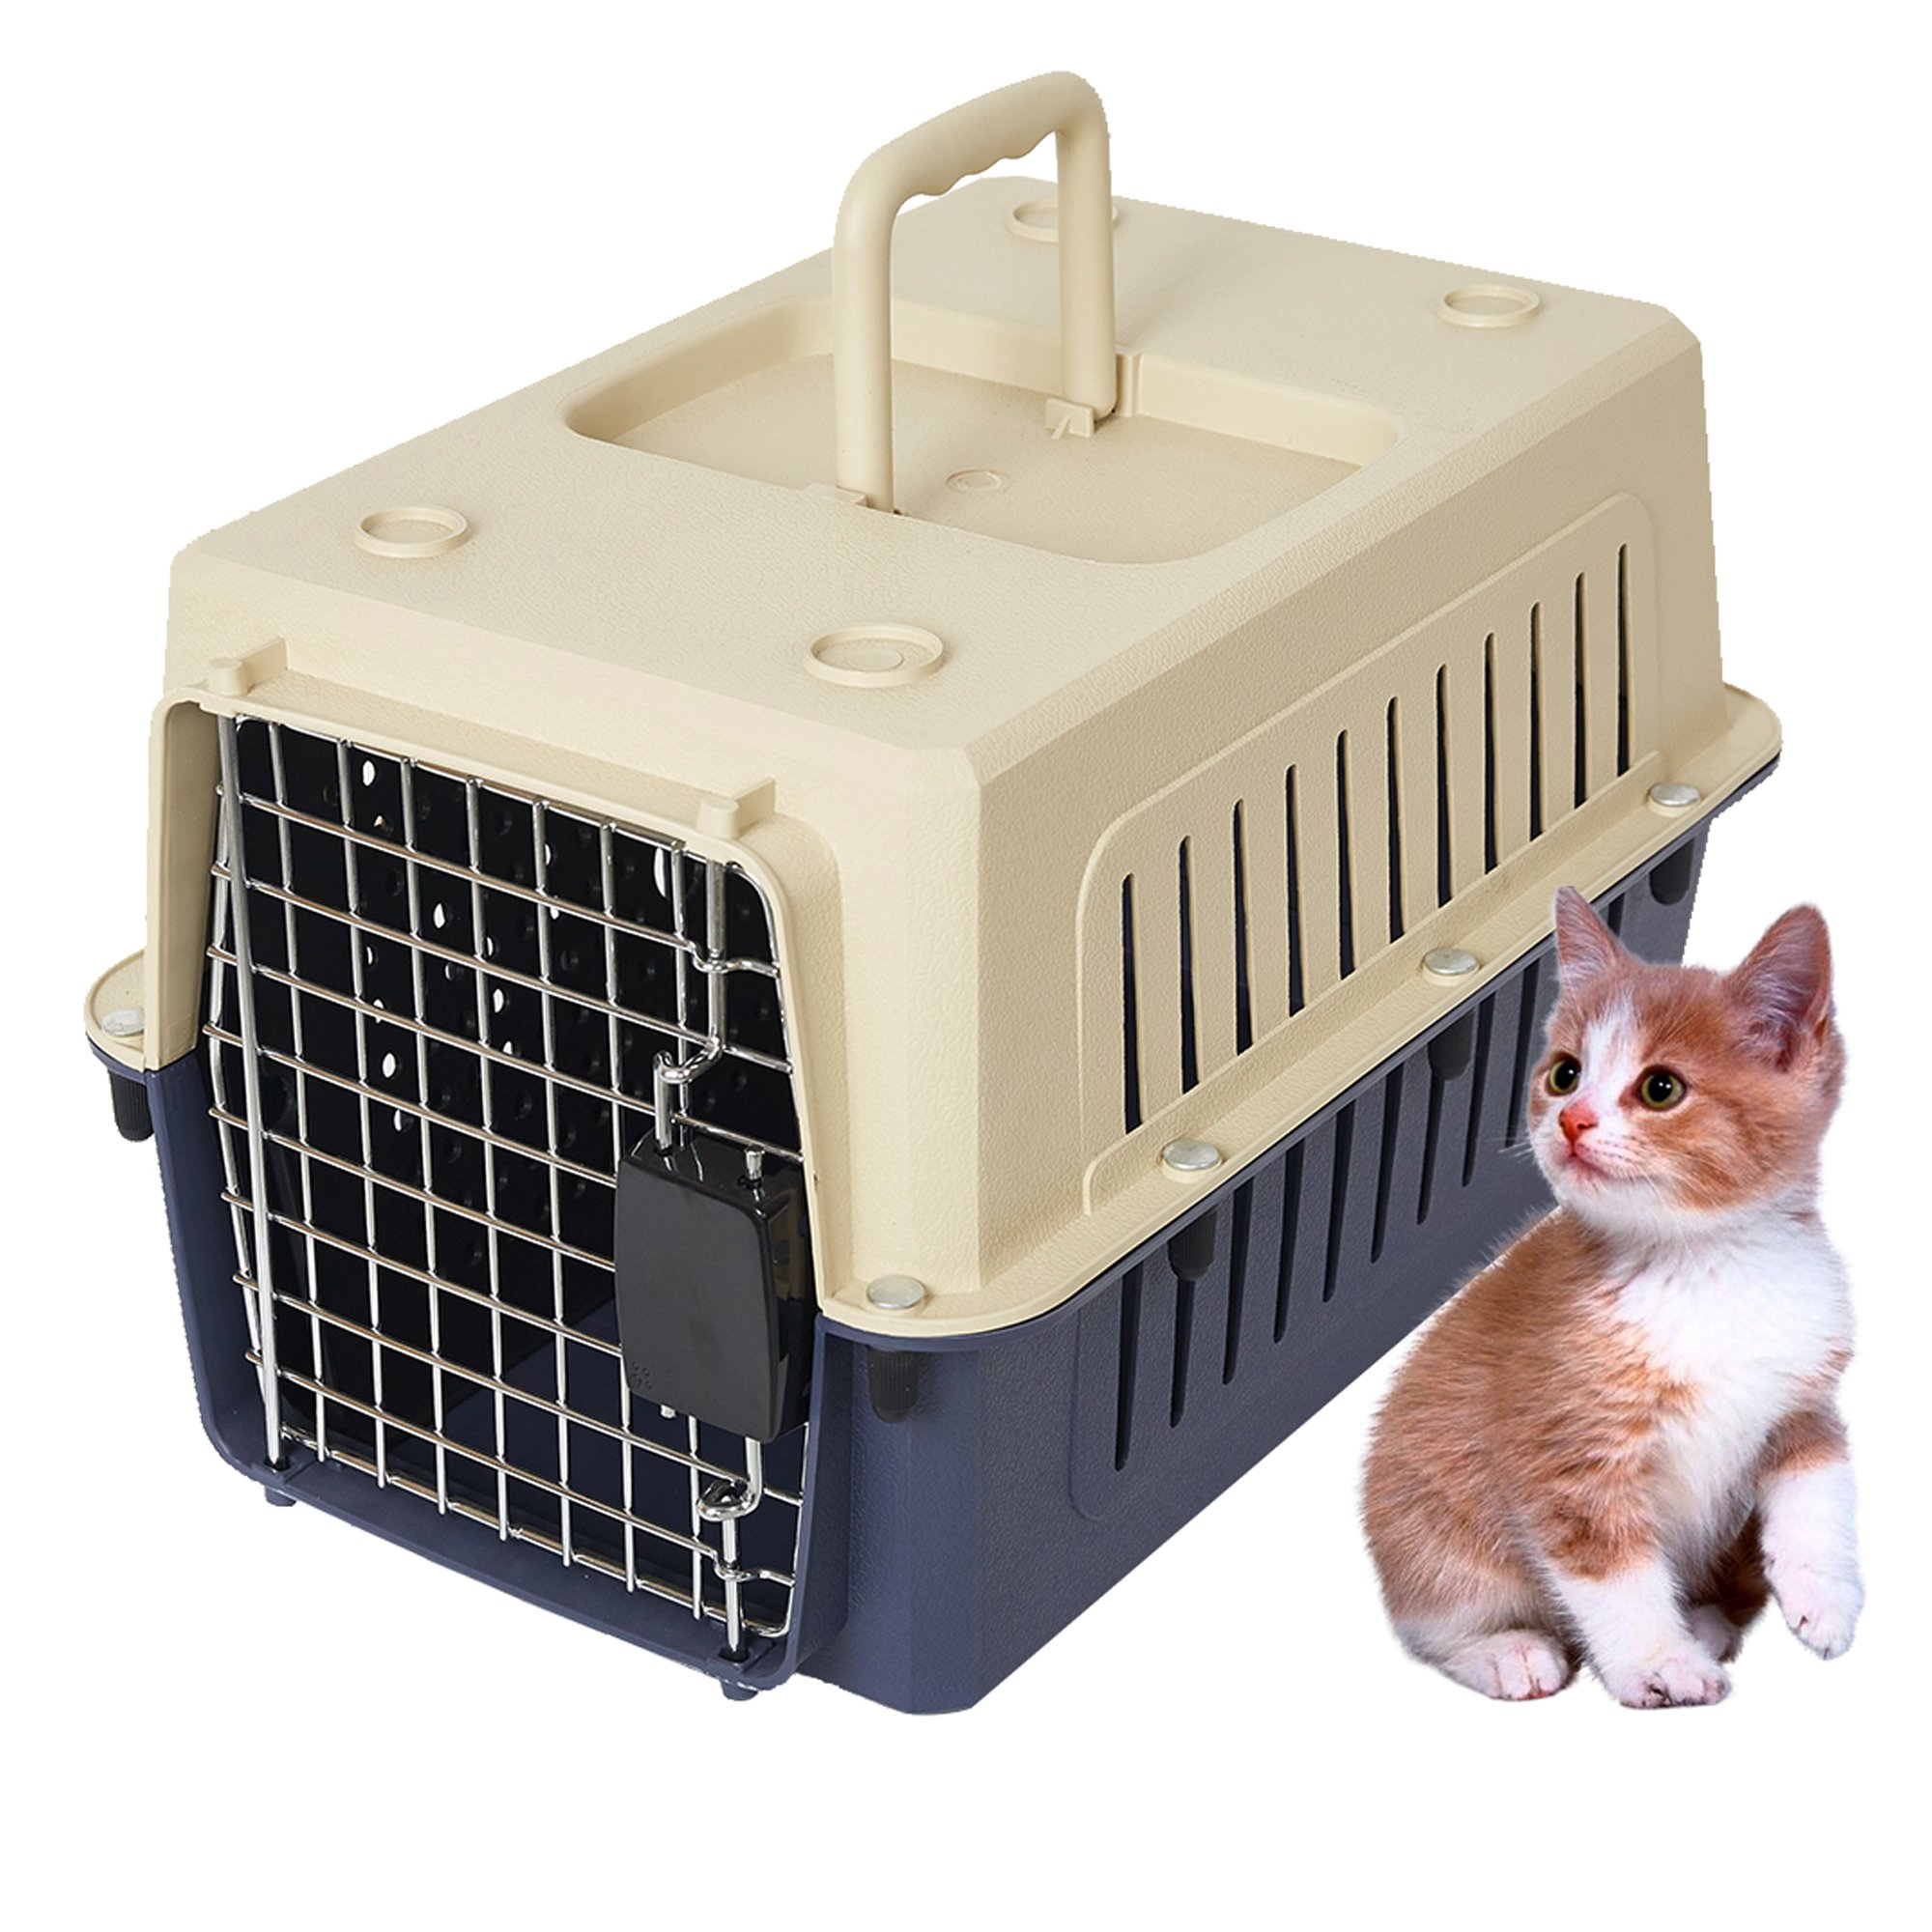 Lucky Tree 4 Size Pet Carrier Cat Carriers Kennel Crate Airline Approved Kitty Travel Cage Plastic Lightweight and Safe to Carry for Puppy Bunny Cats, 2 Color by Lucky Tree